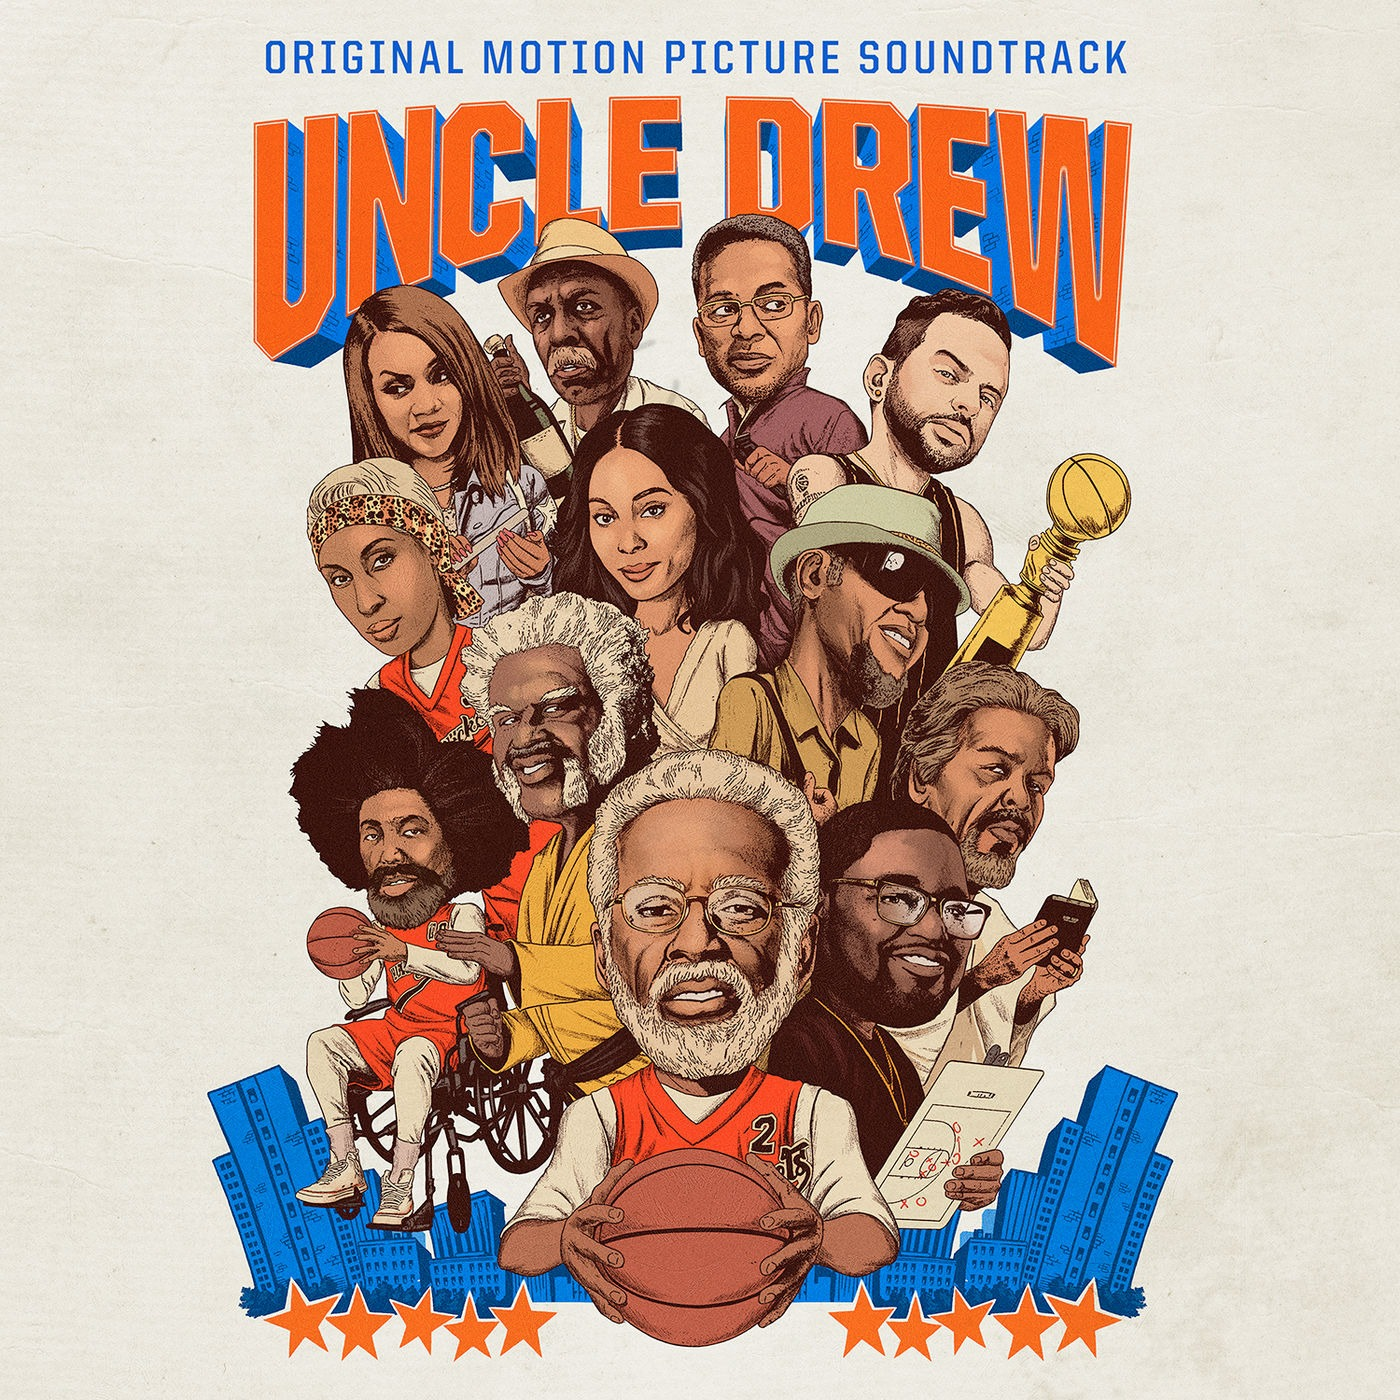 A$AP Rocky, 21 Savage & Gucci Mane – Uncle Drew (Soundtrack)